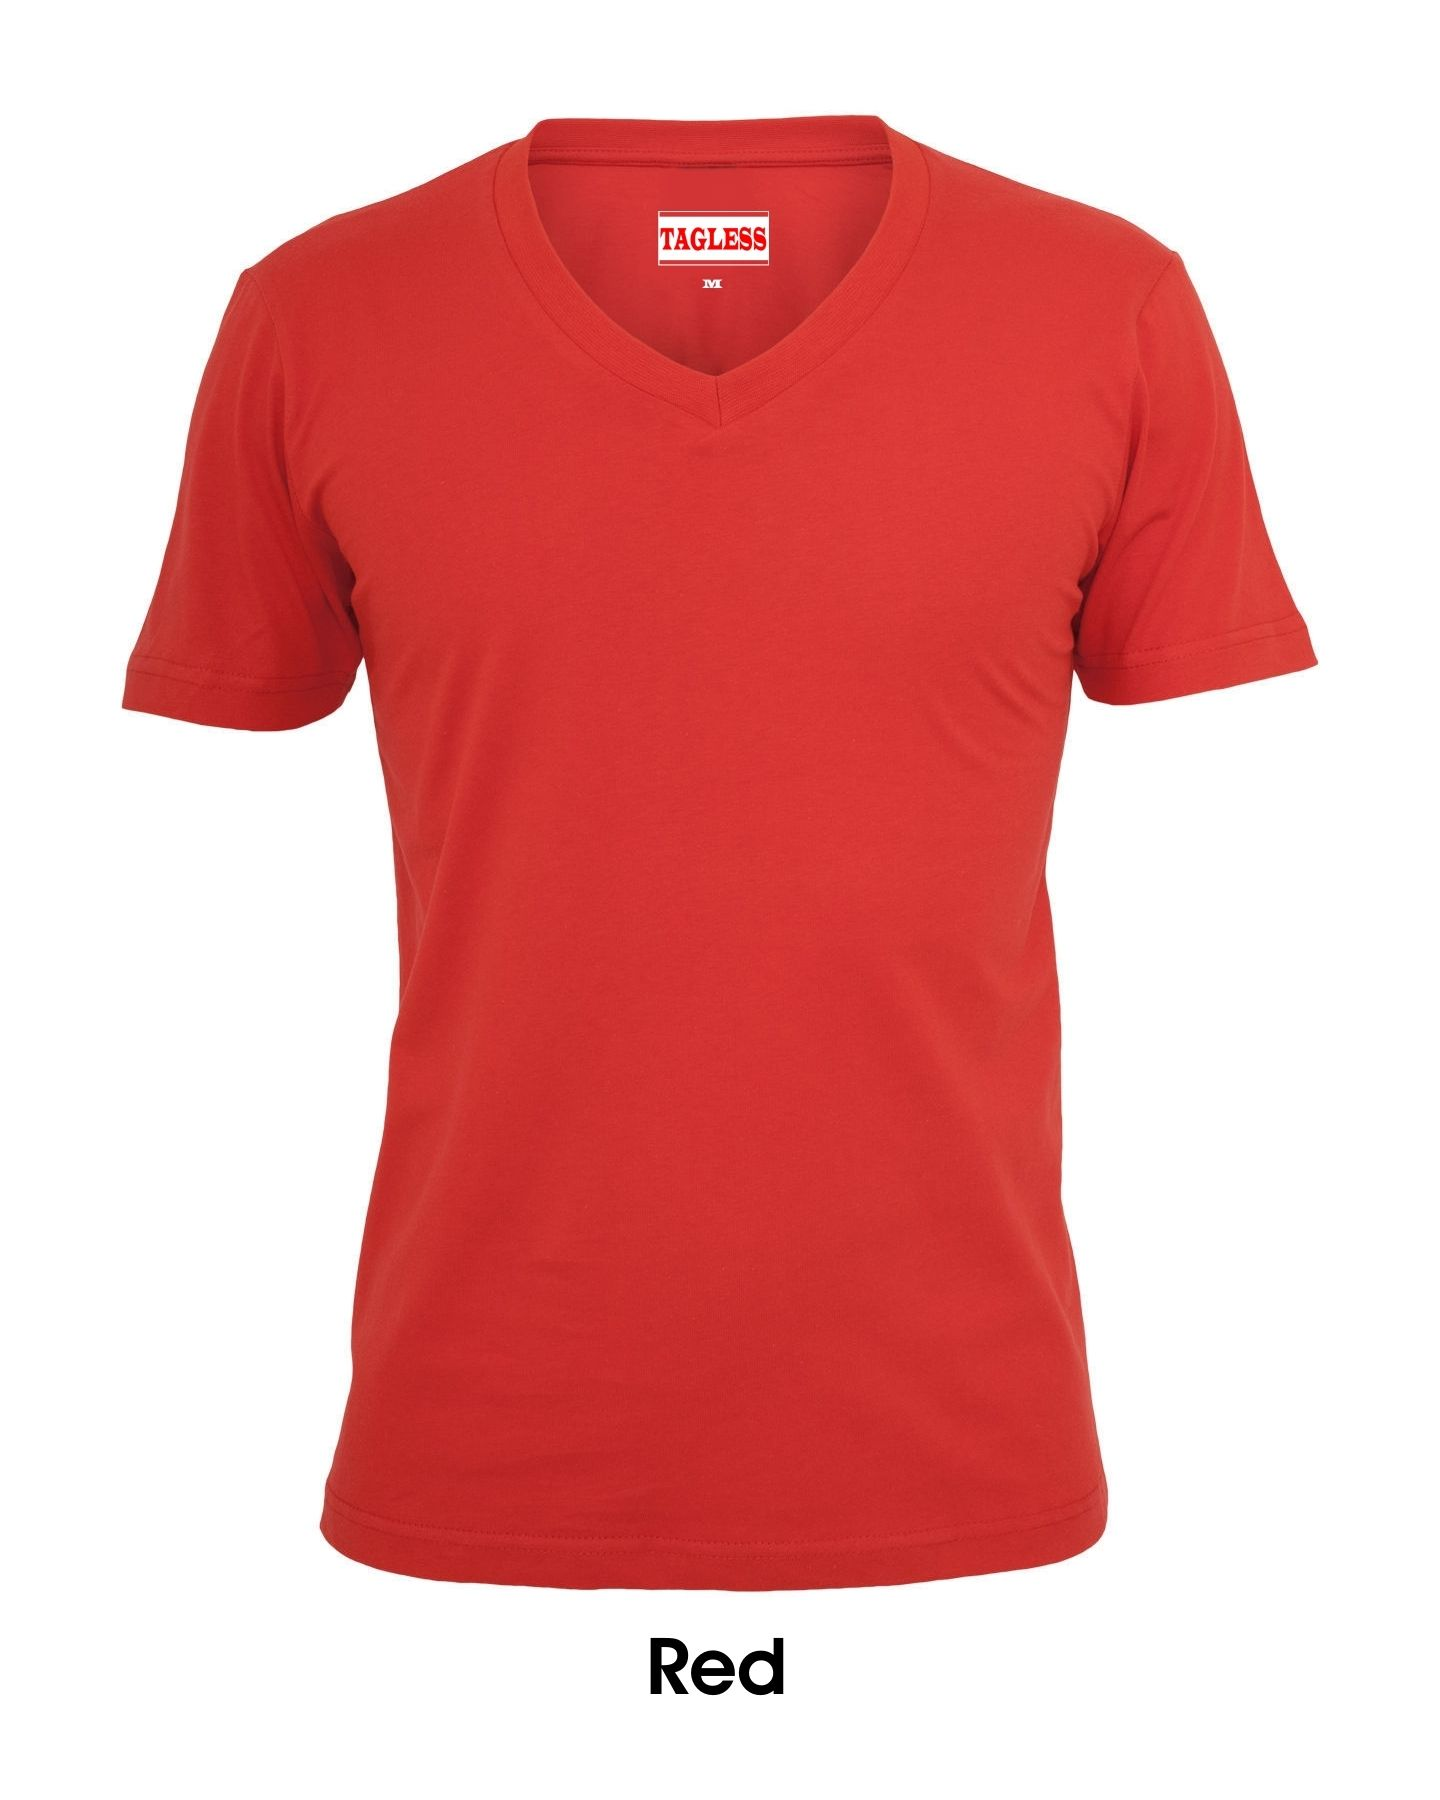 We Are Oem Manufacturer Of T Shirts We Do T Shirts With Custom Tag